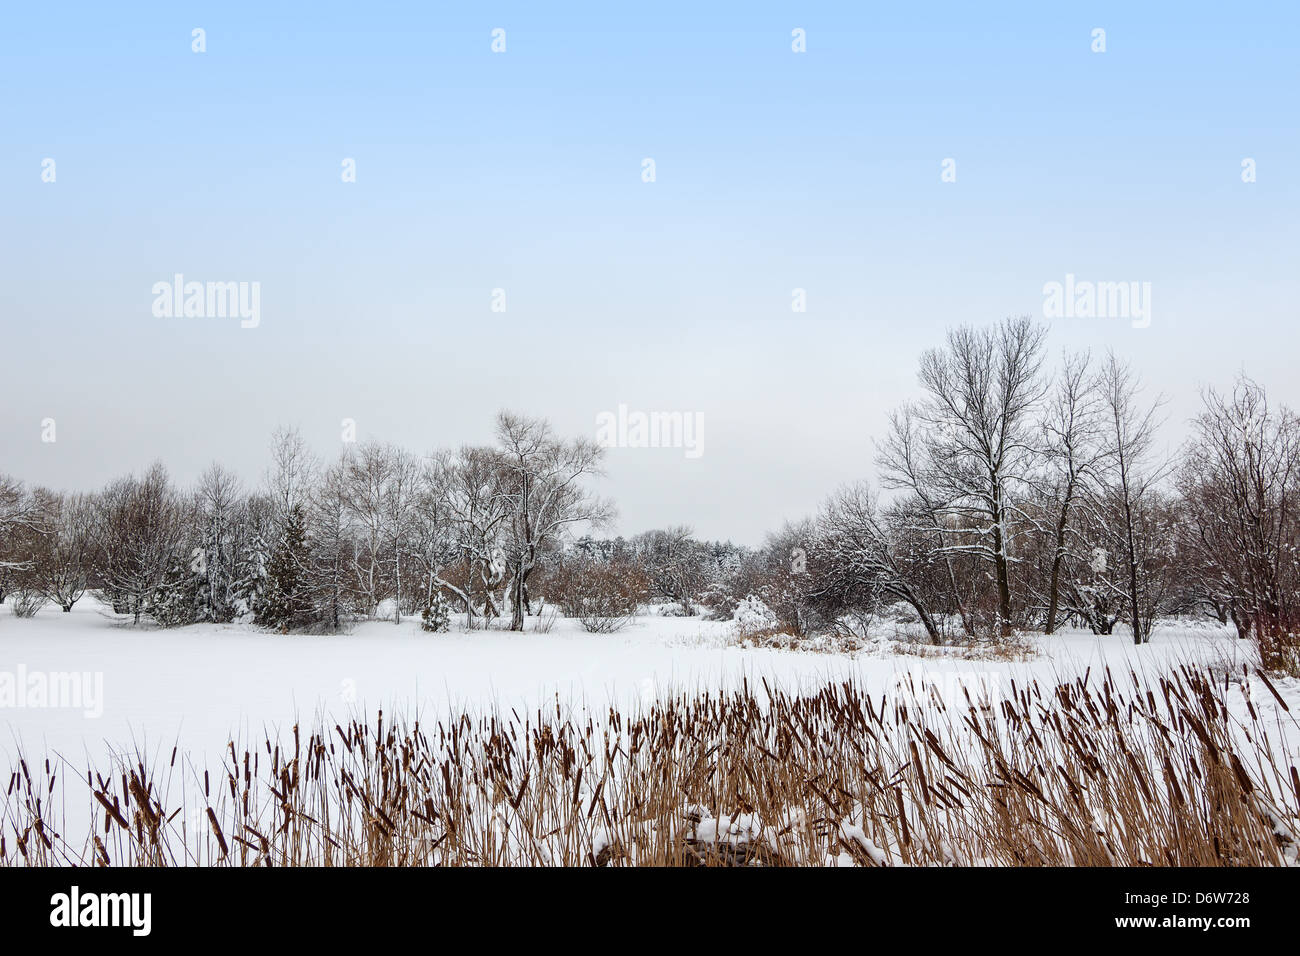 Reed growing by a lake covered by snow. Canadian winter landscape. - Stock Image